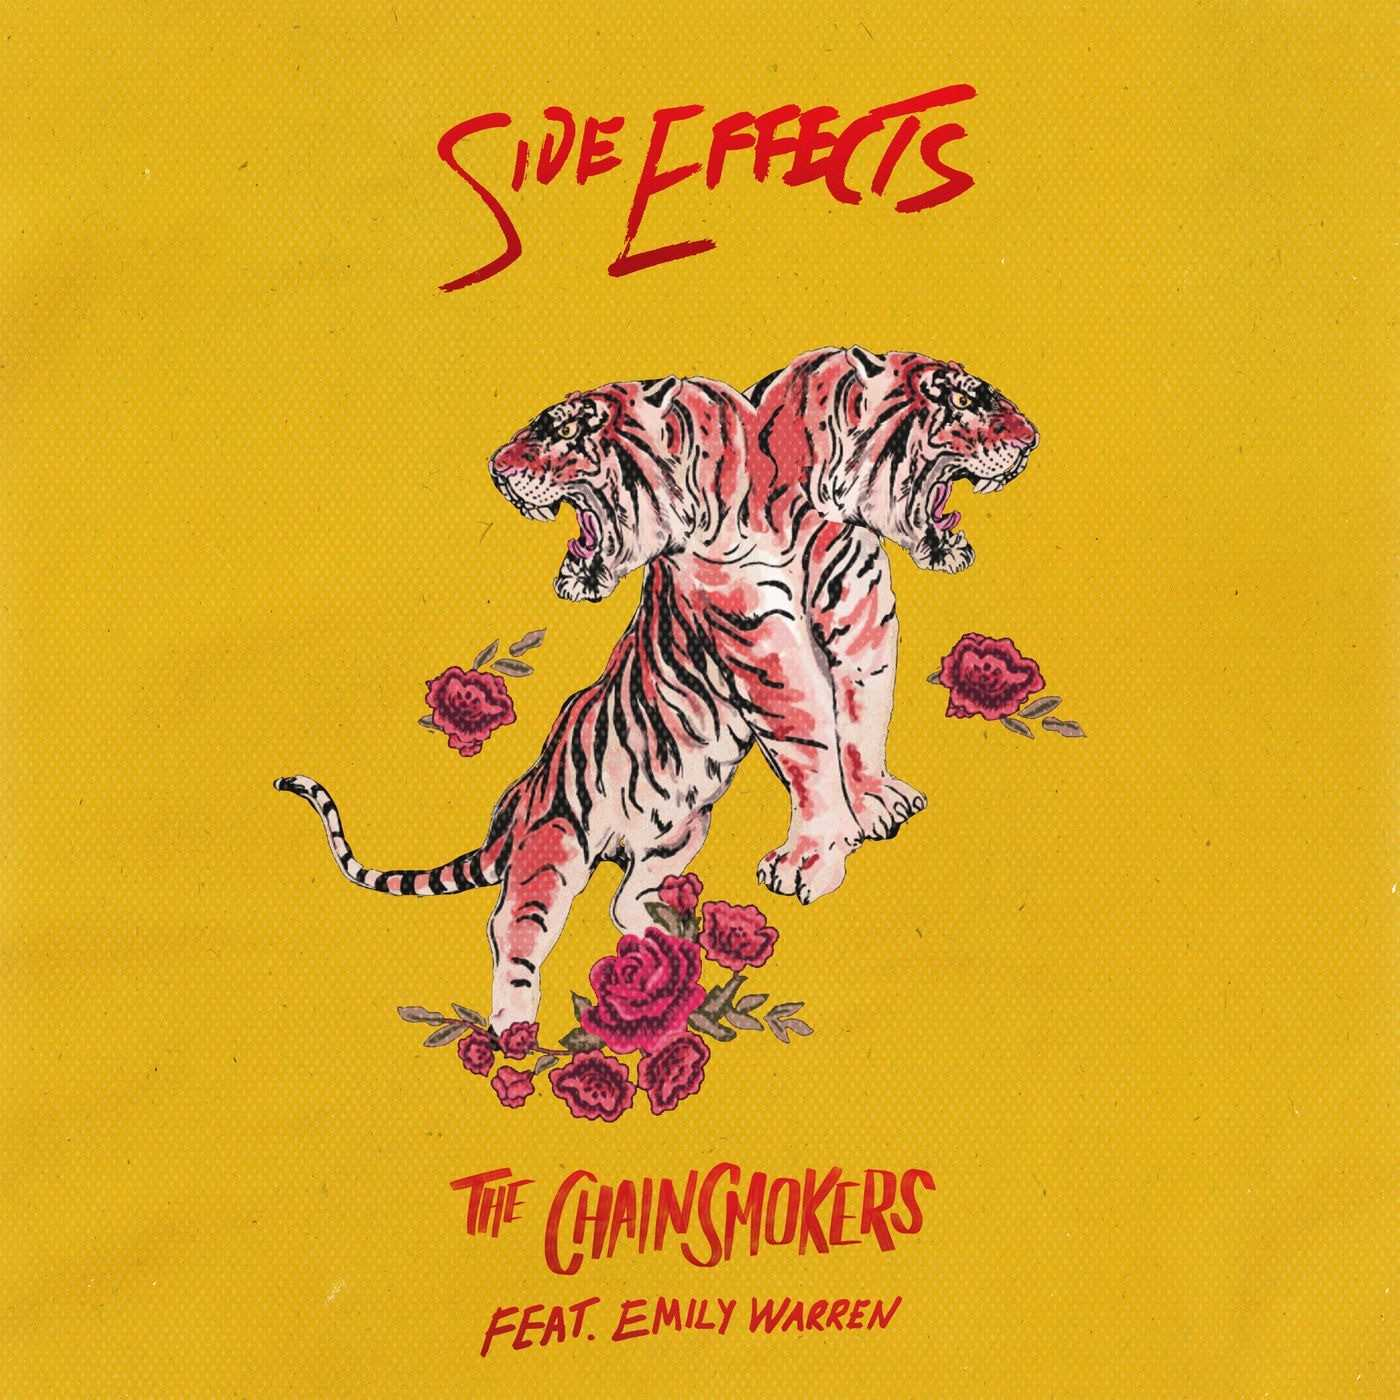 New Single: The Chainsmokers | Side Effects (feat. Emily Warren) [Audio]